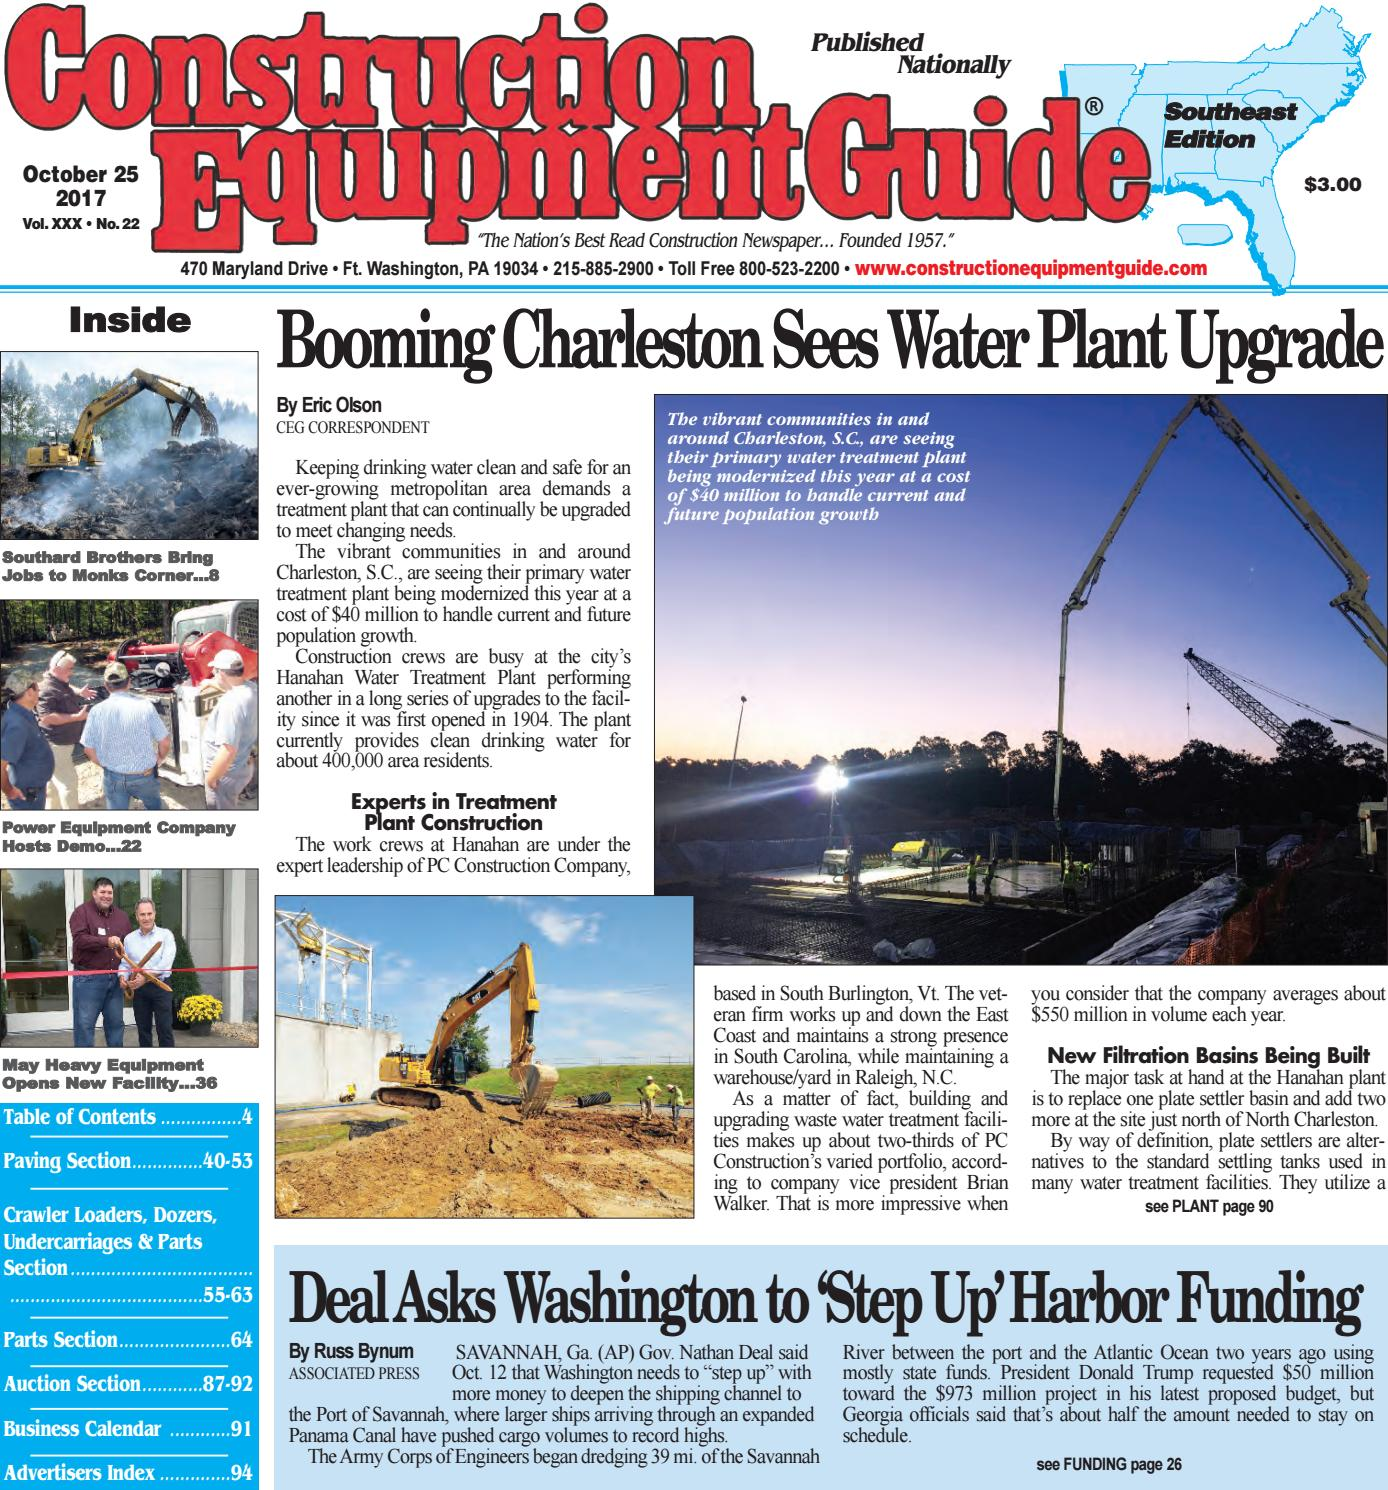 Southeast 22 October 25, 2017 by Construction Equipment Guide - issuu